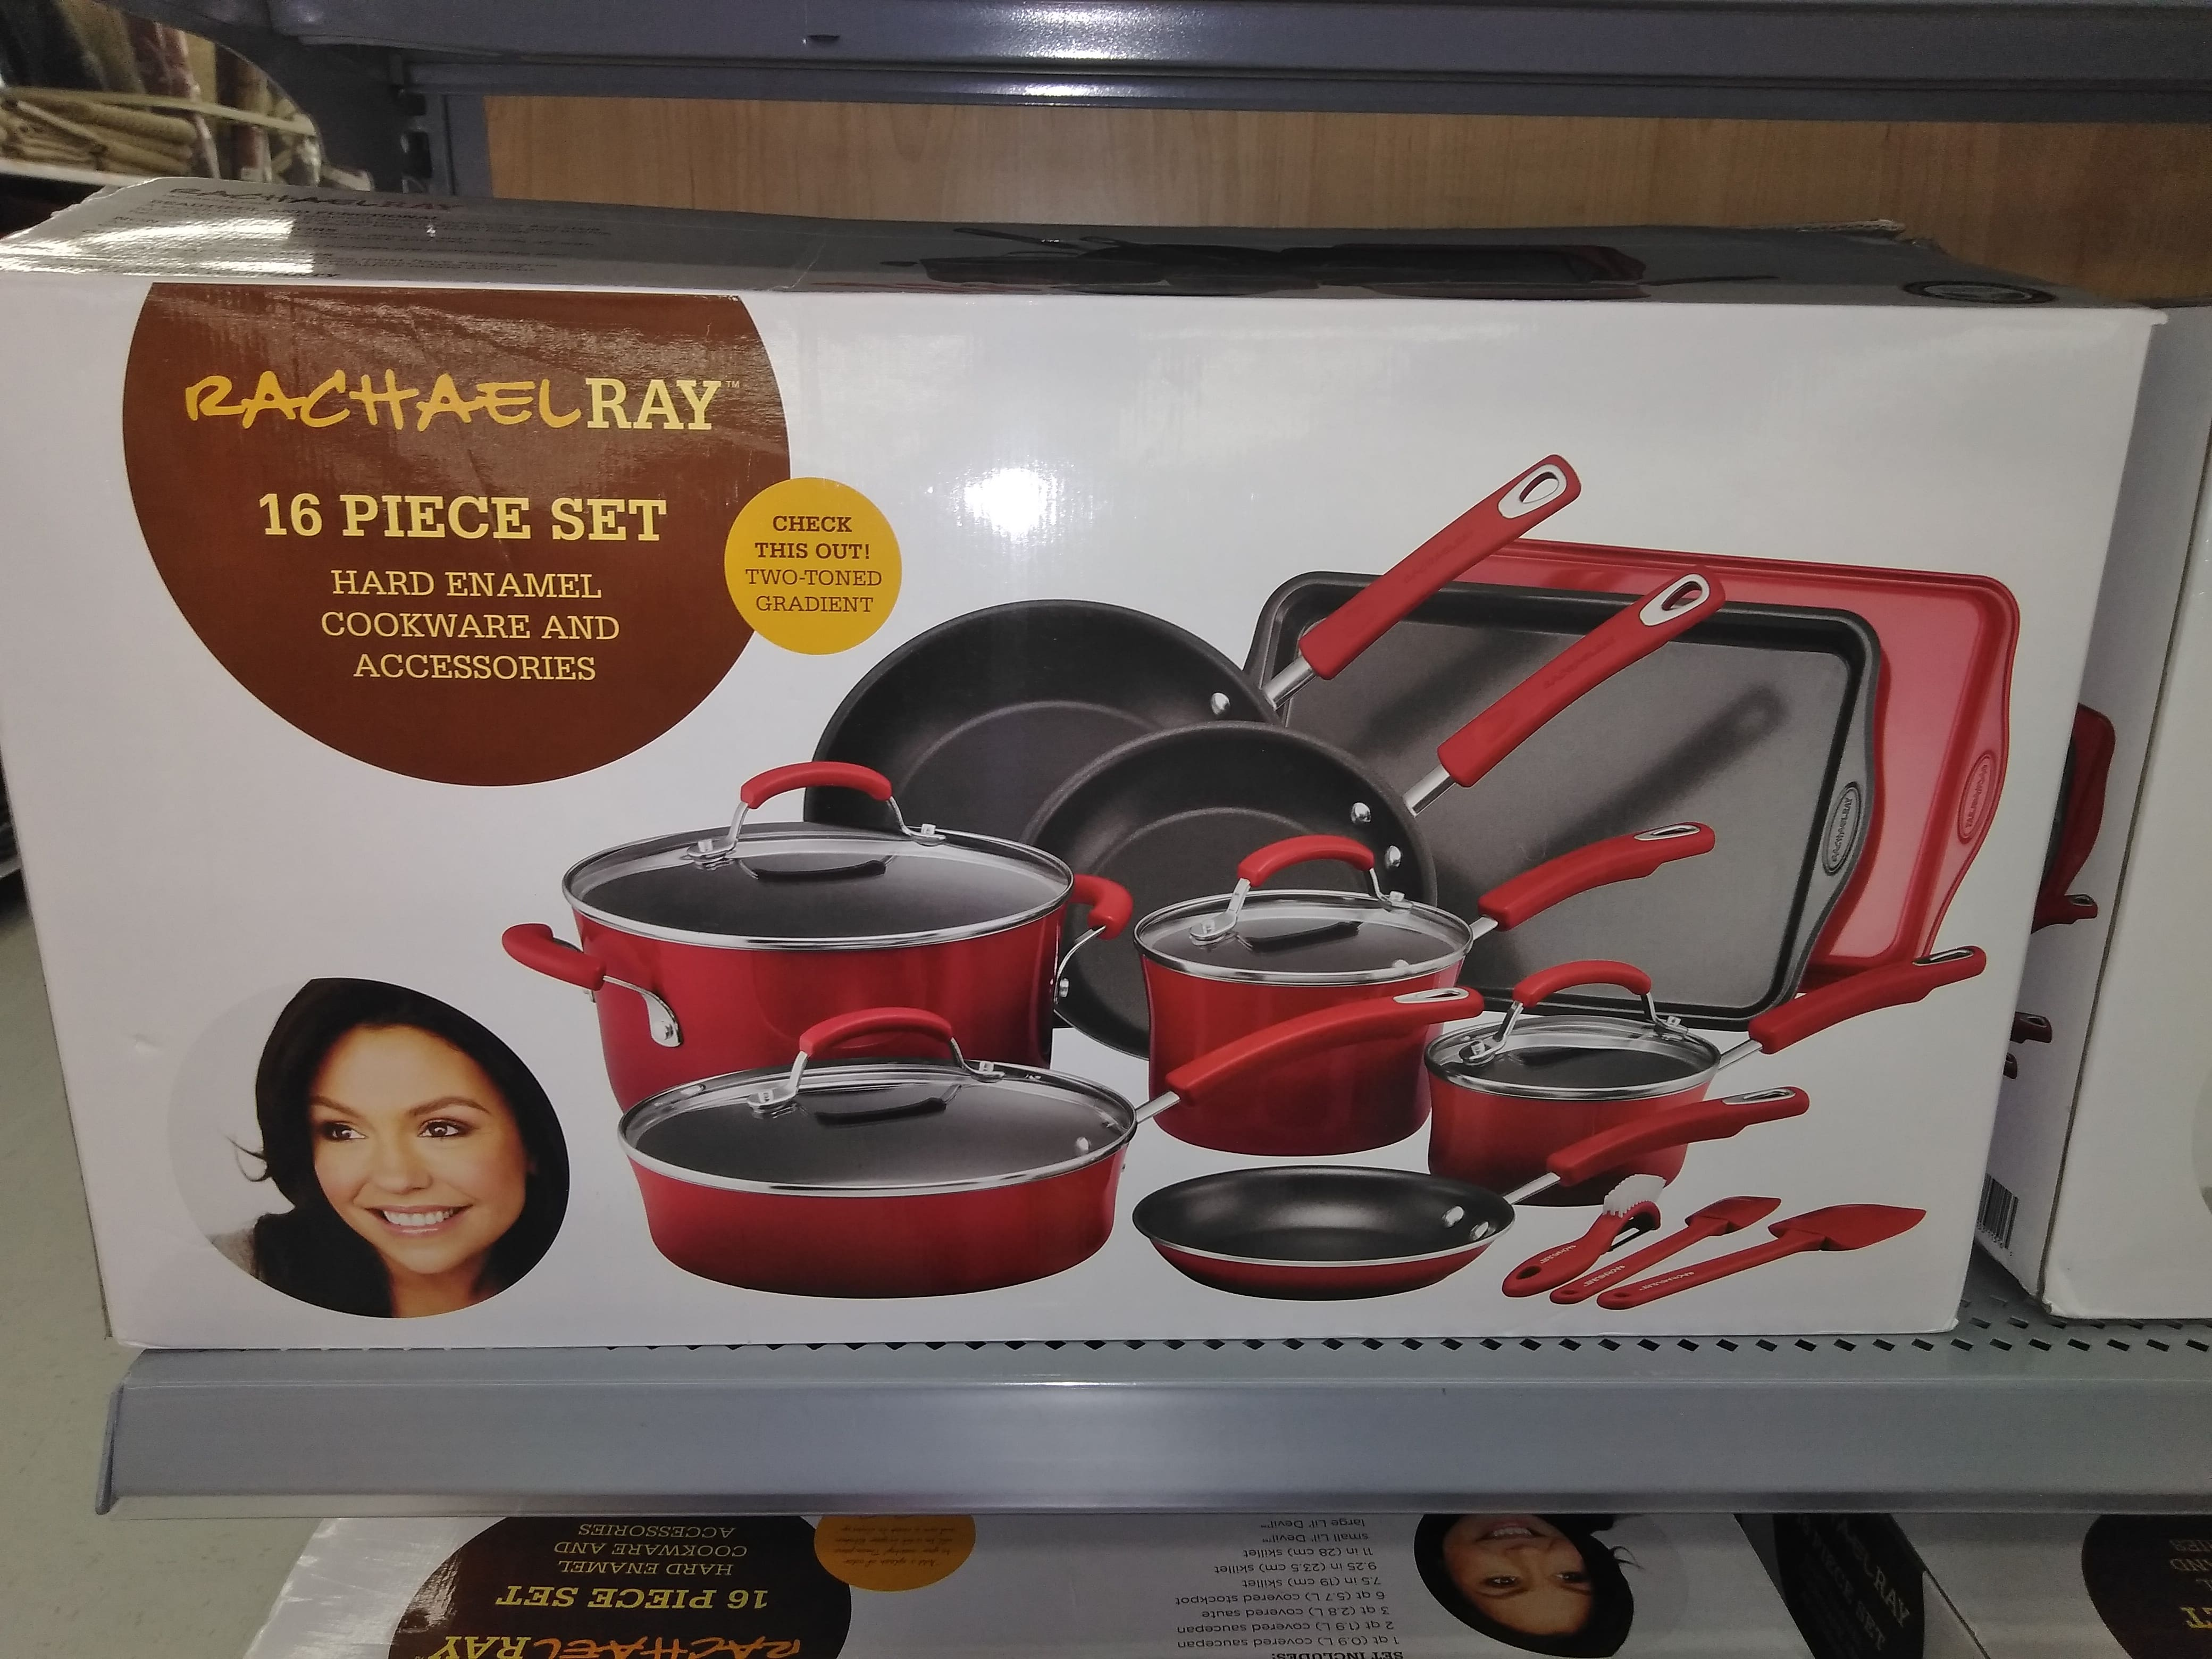 Rachael Ray Hard Enamel Nonstick 16-pc. Cookware Set, Red (Walmart In-Store Only) @ $50